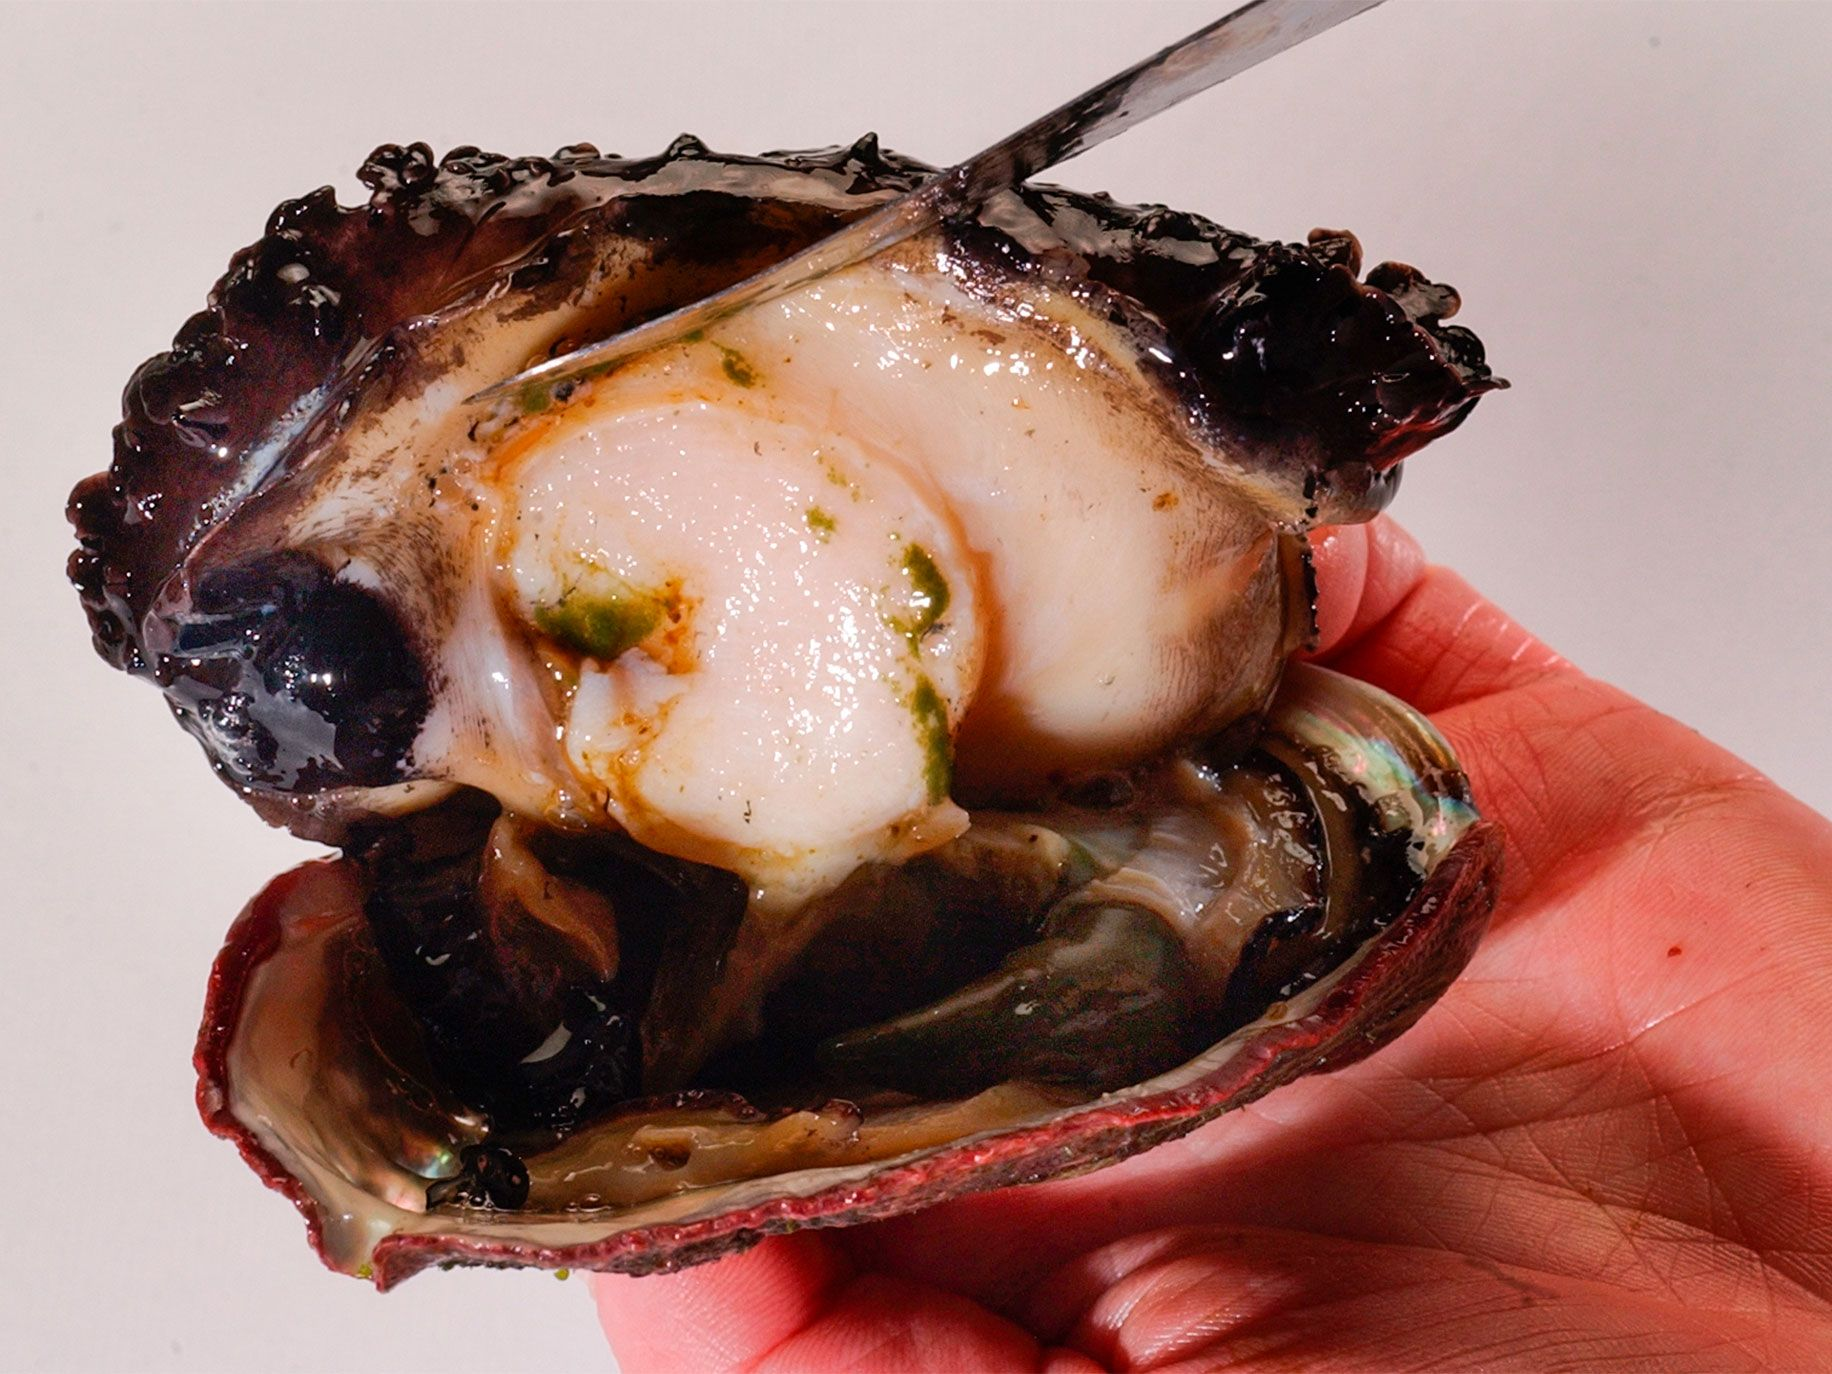 The abalone's foot is prized as a delicacy, often just cracker-battered and pan fried.